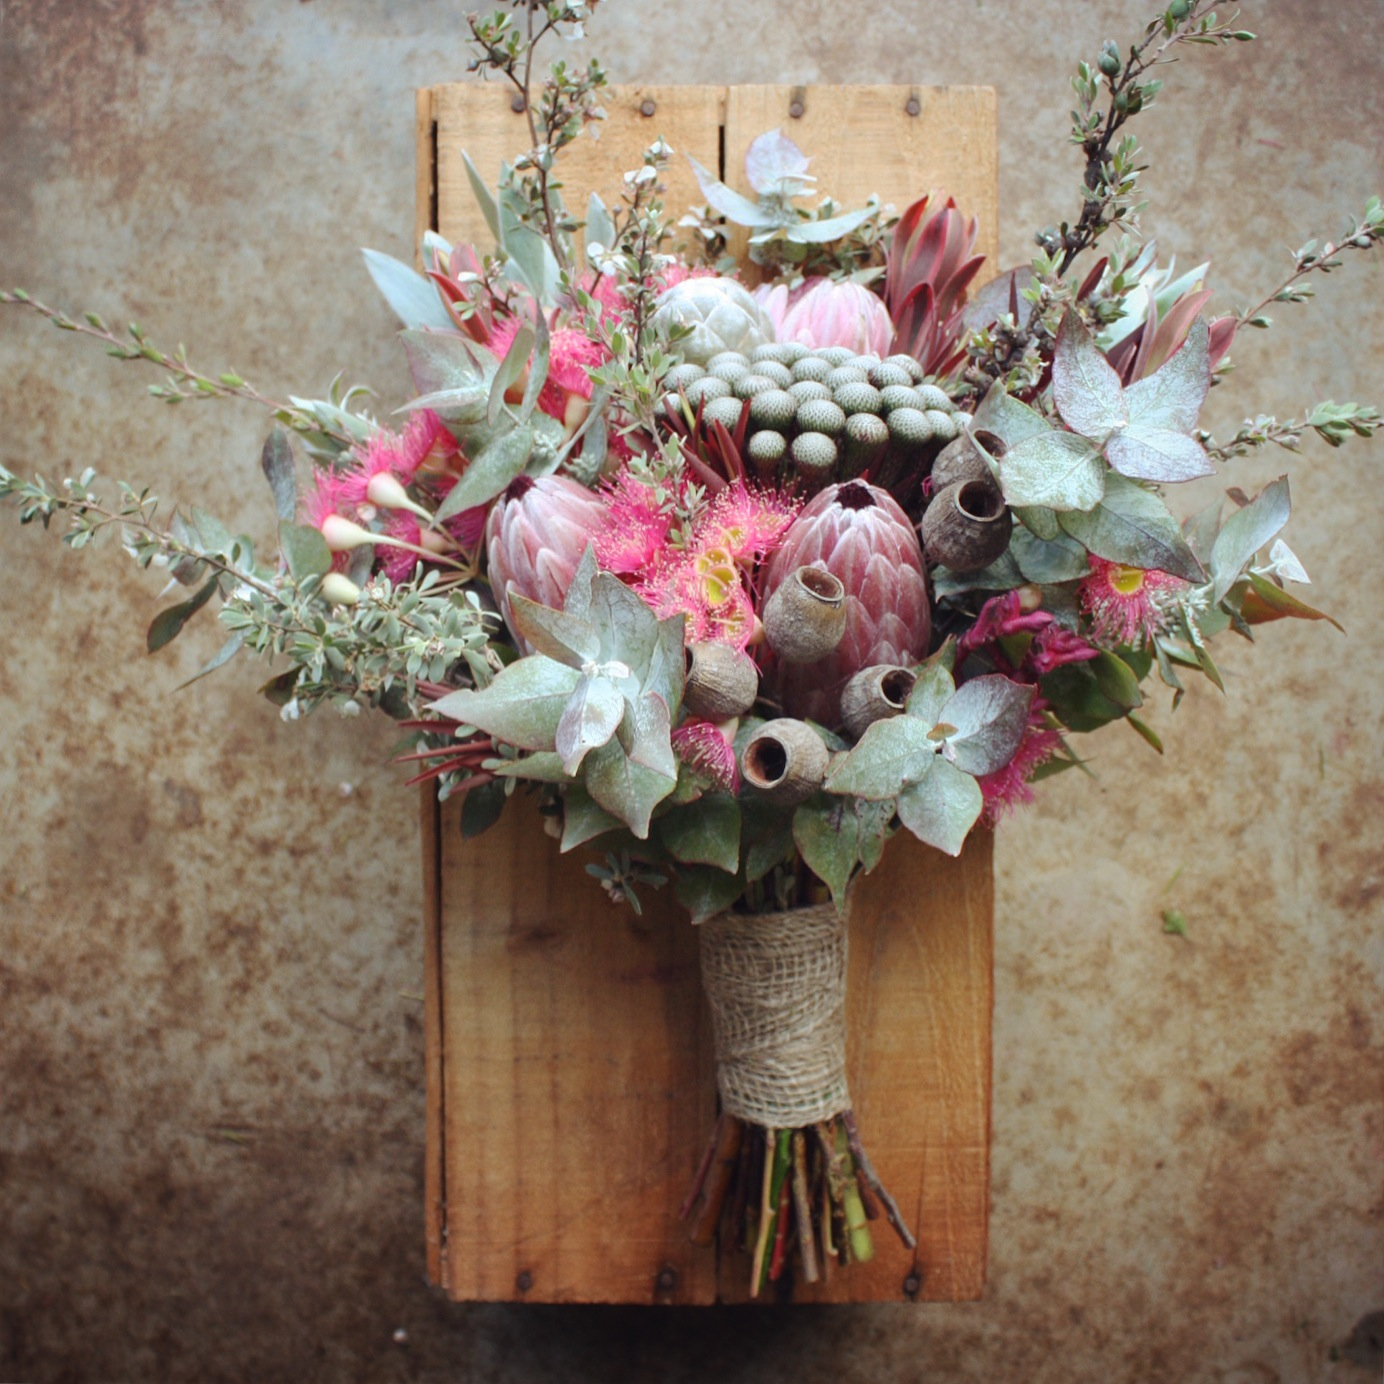 Ideas For Wedding Flowers: Swallows Nest Farm: DIY Bush Wedding In March